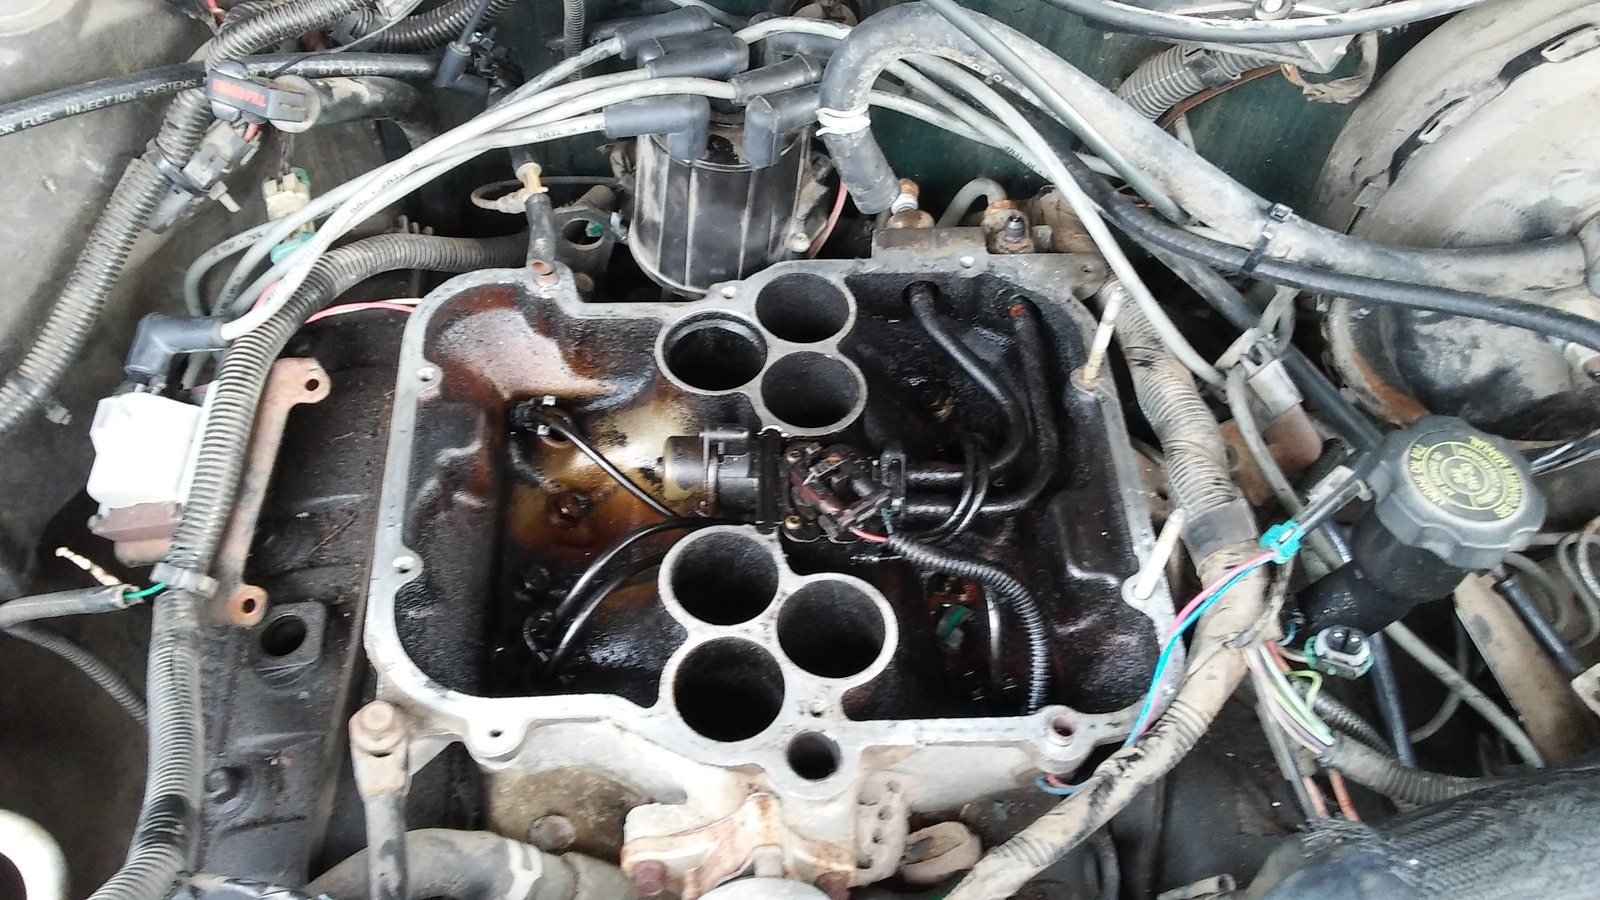 Chevrolet S 10 Blazer Questions No Start Condition Need Answers Please Help Cargurus